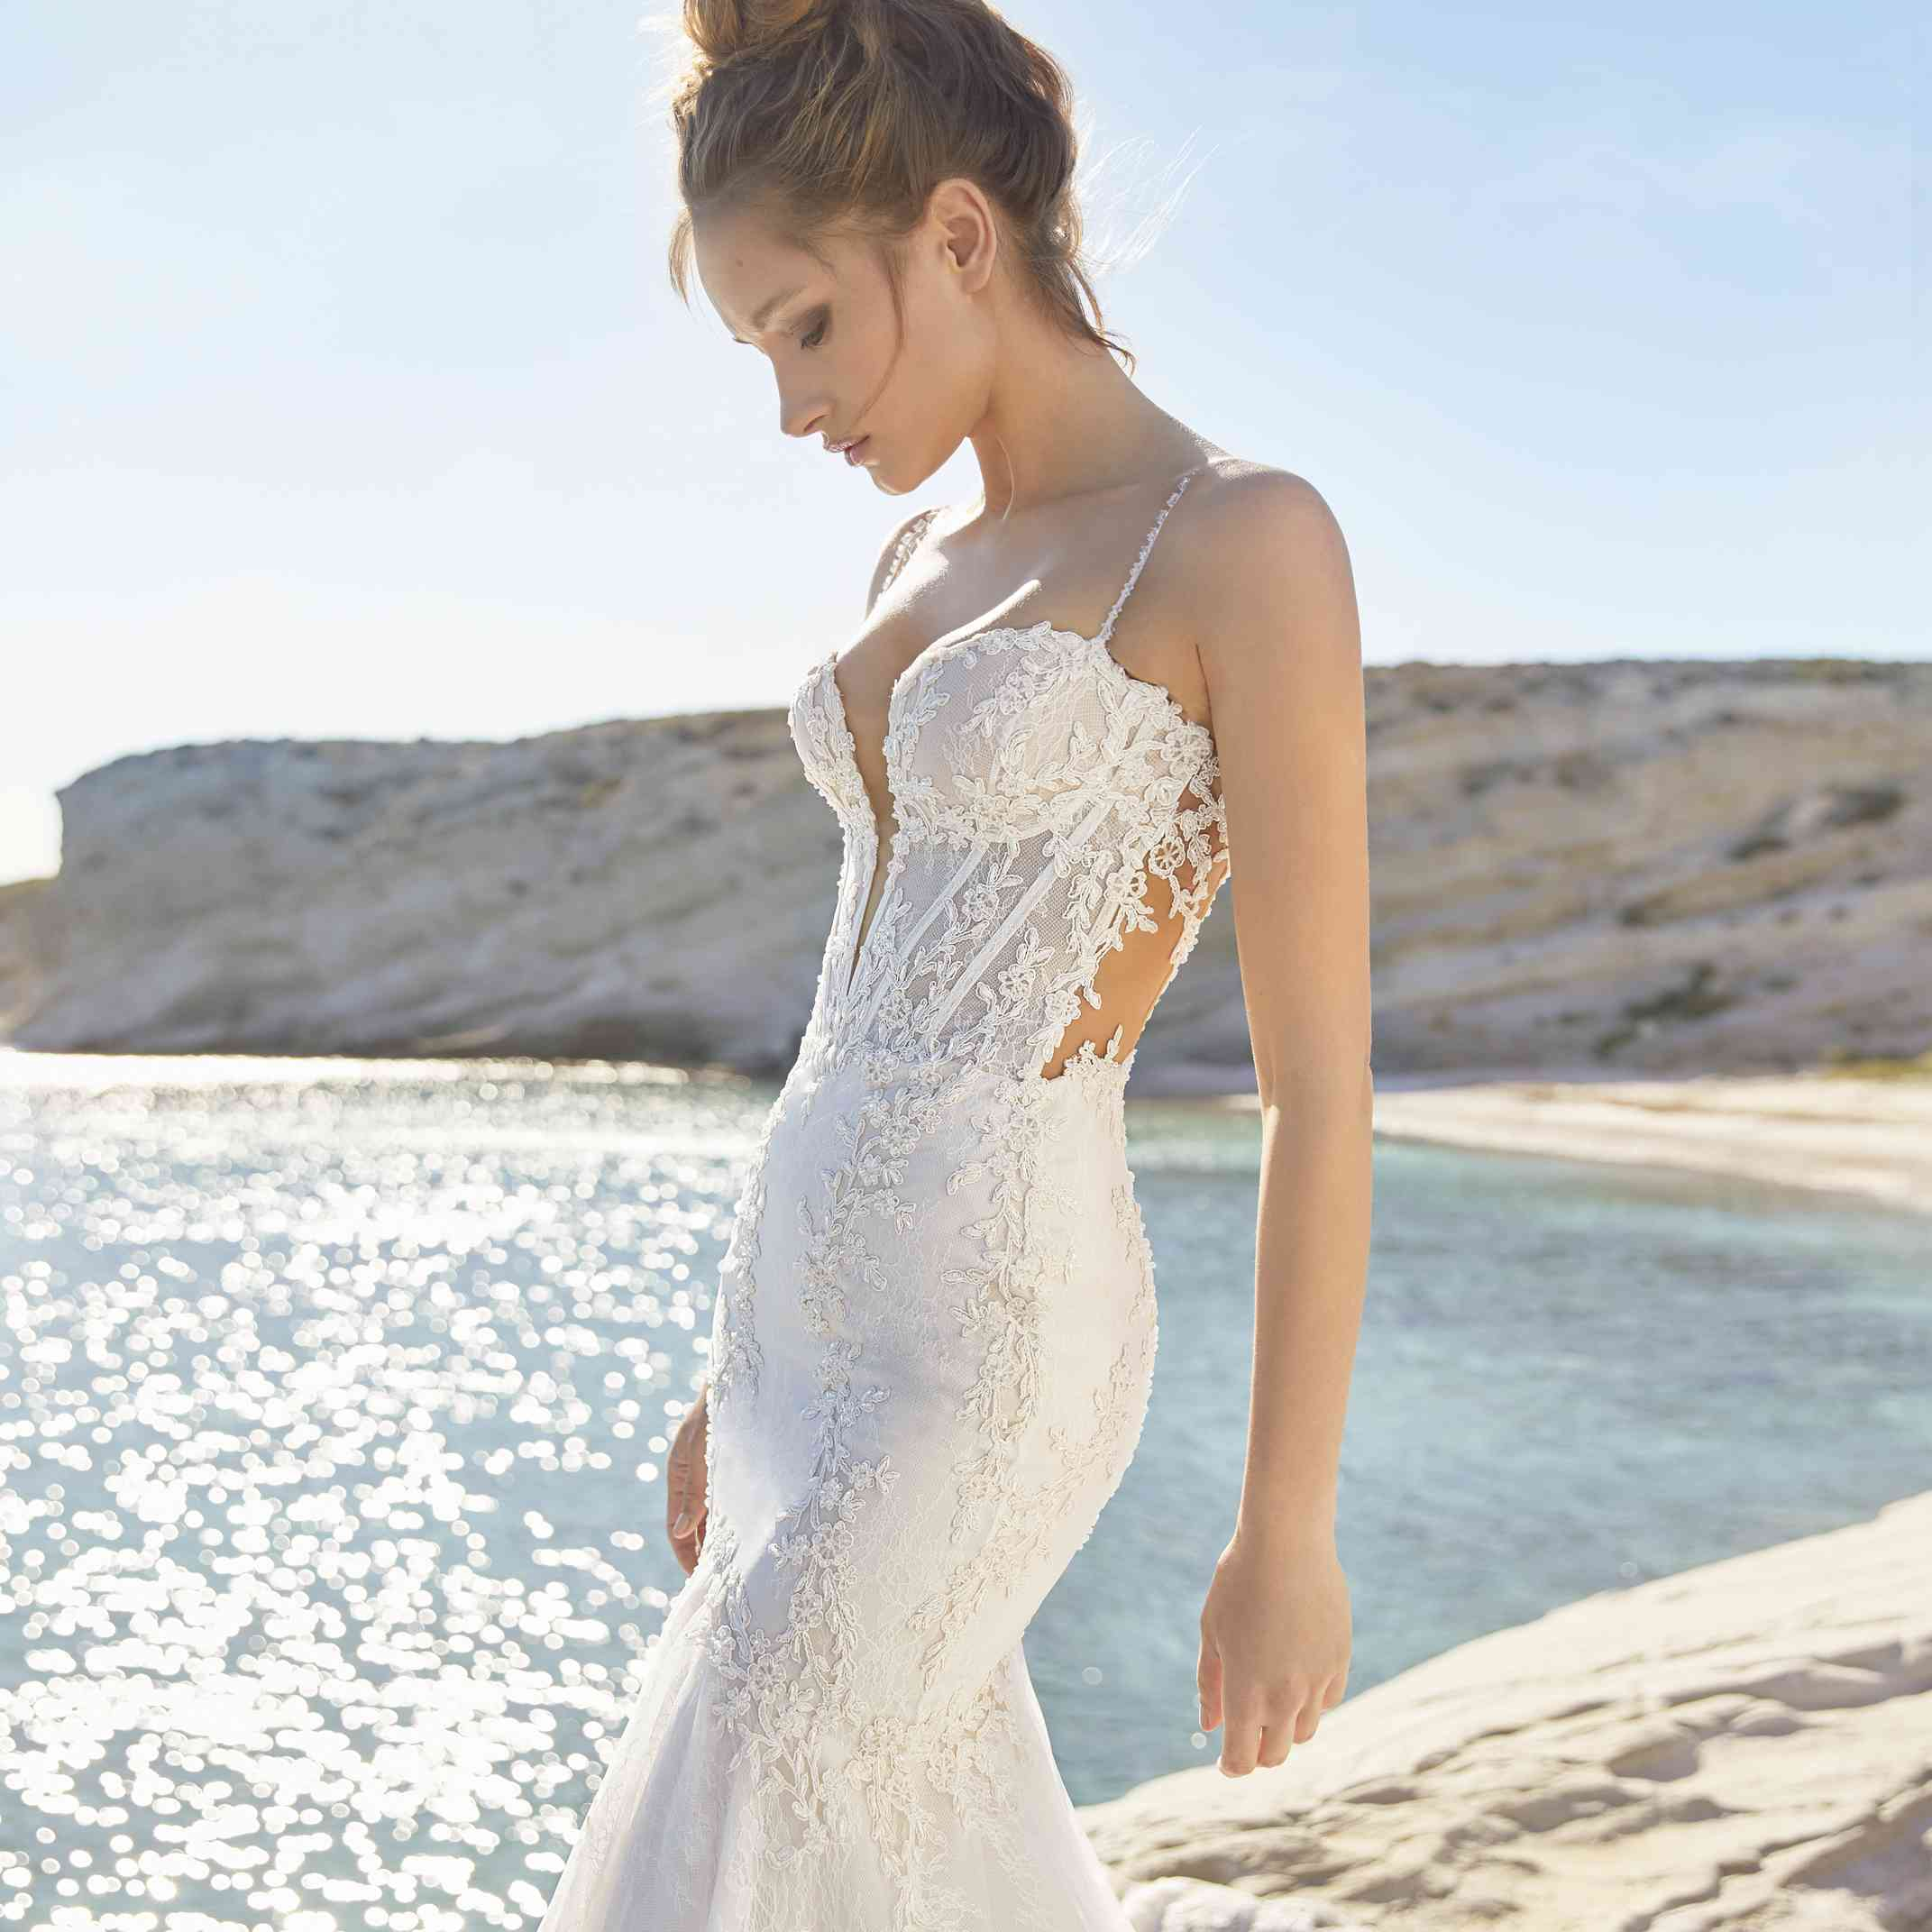 Ines by Ines di Santo Spring 2021